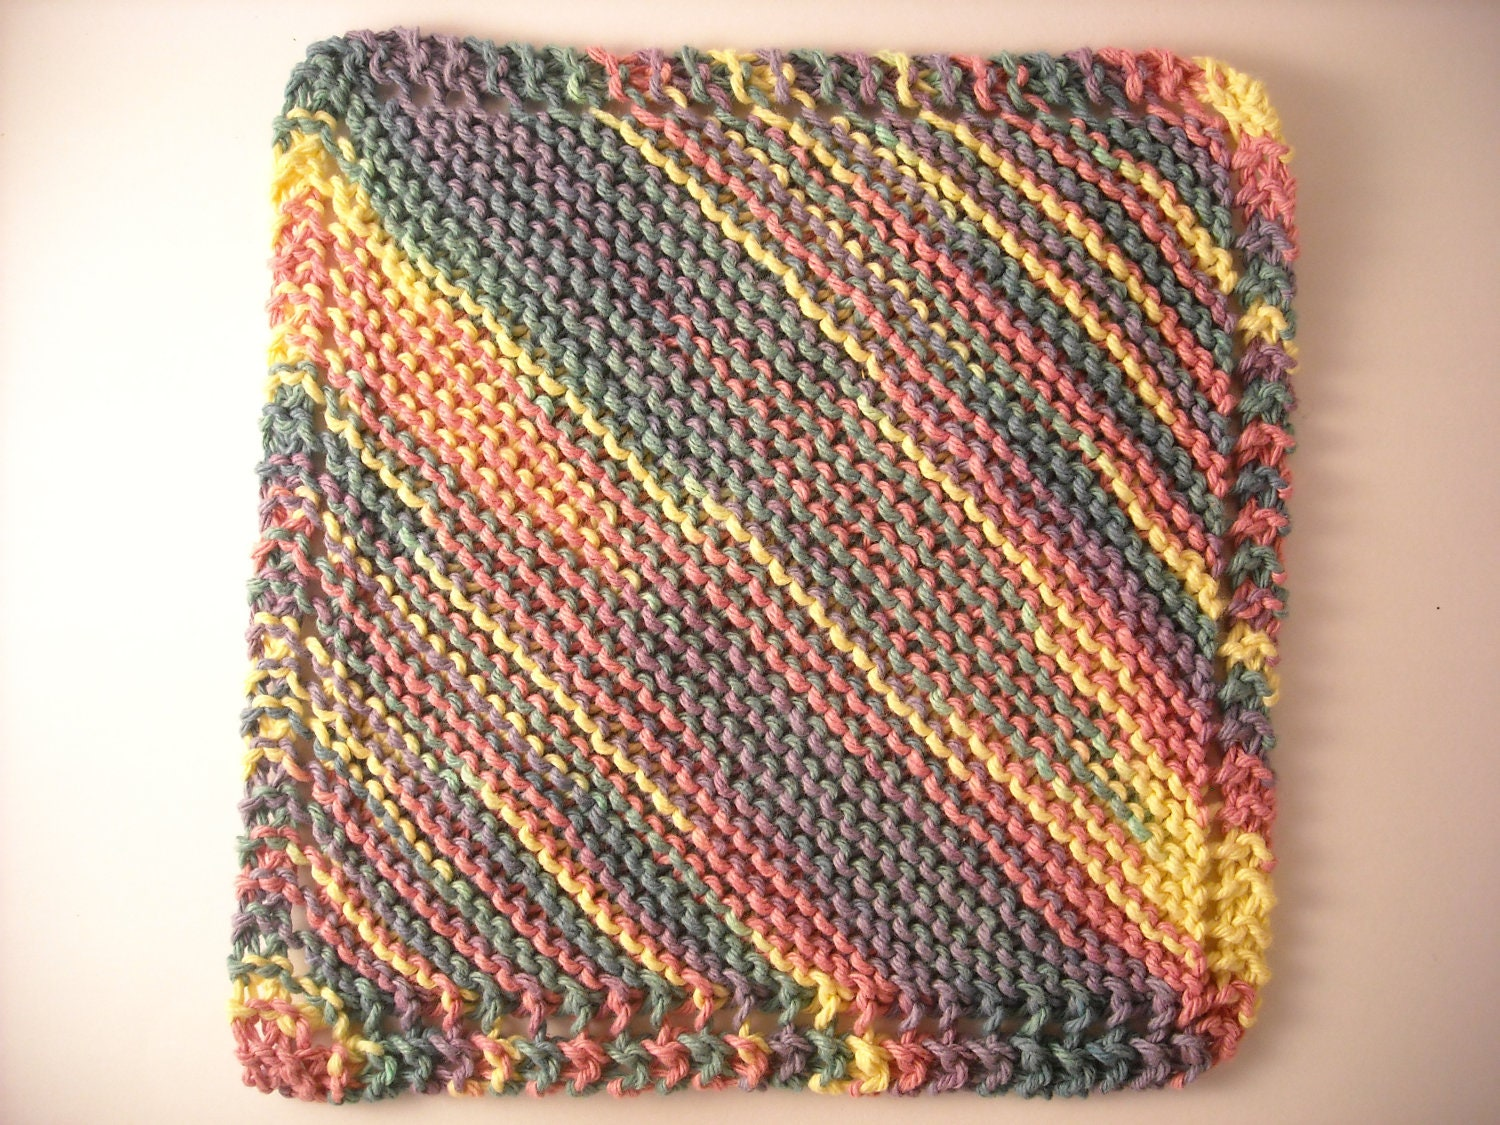 Knitted Cotton Dish Towel Pattern : Hand Knit Dish Cloth Mix-N-Match Cotton Large 9